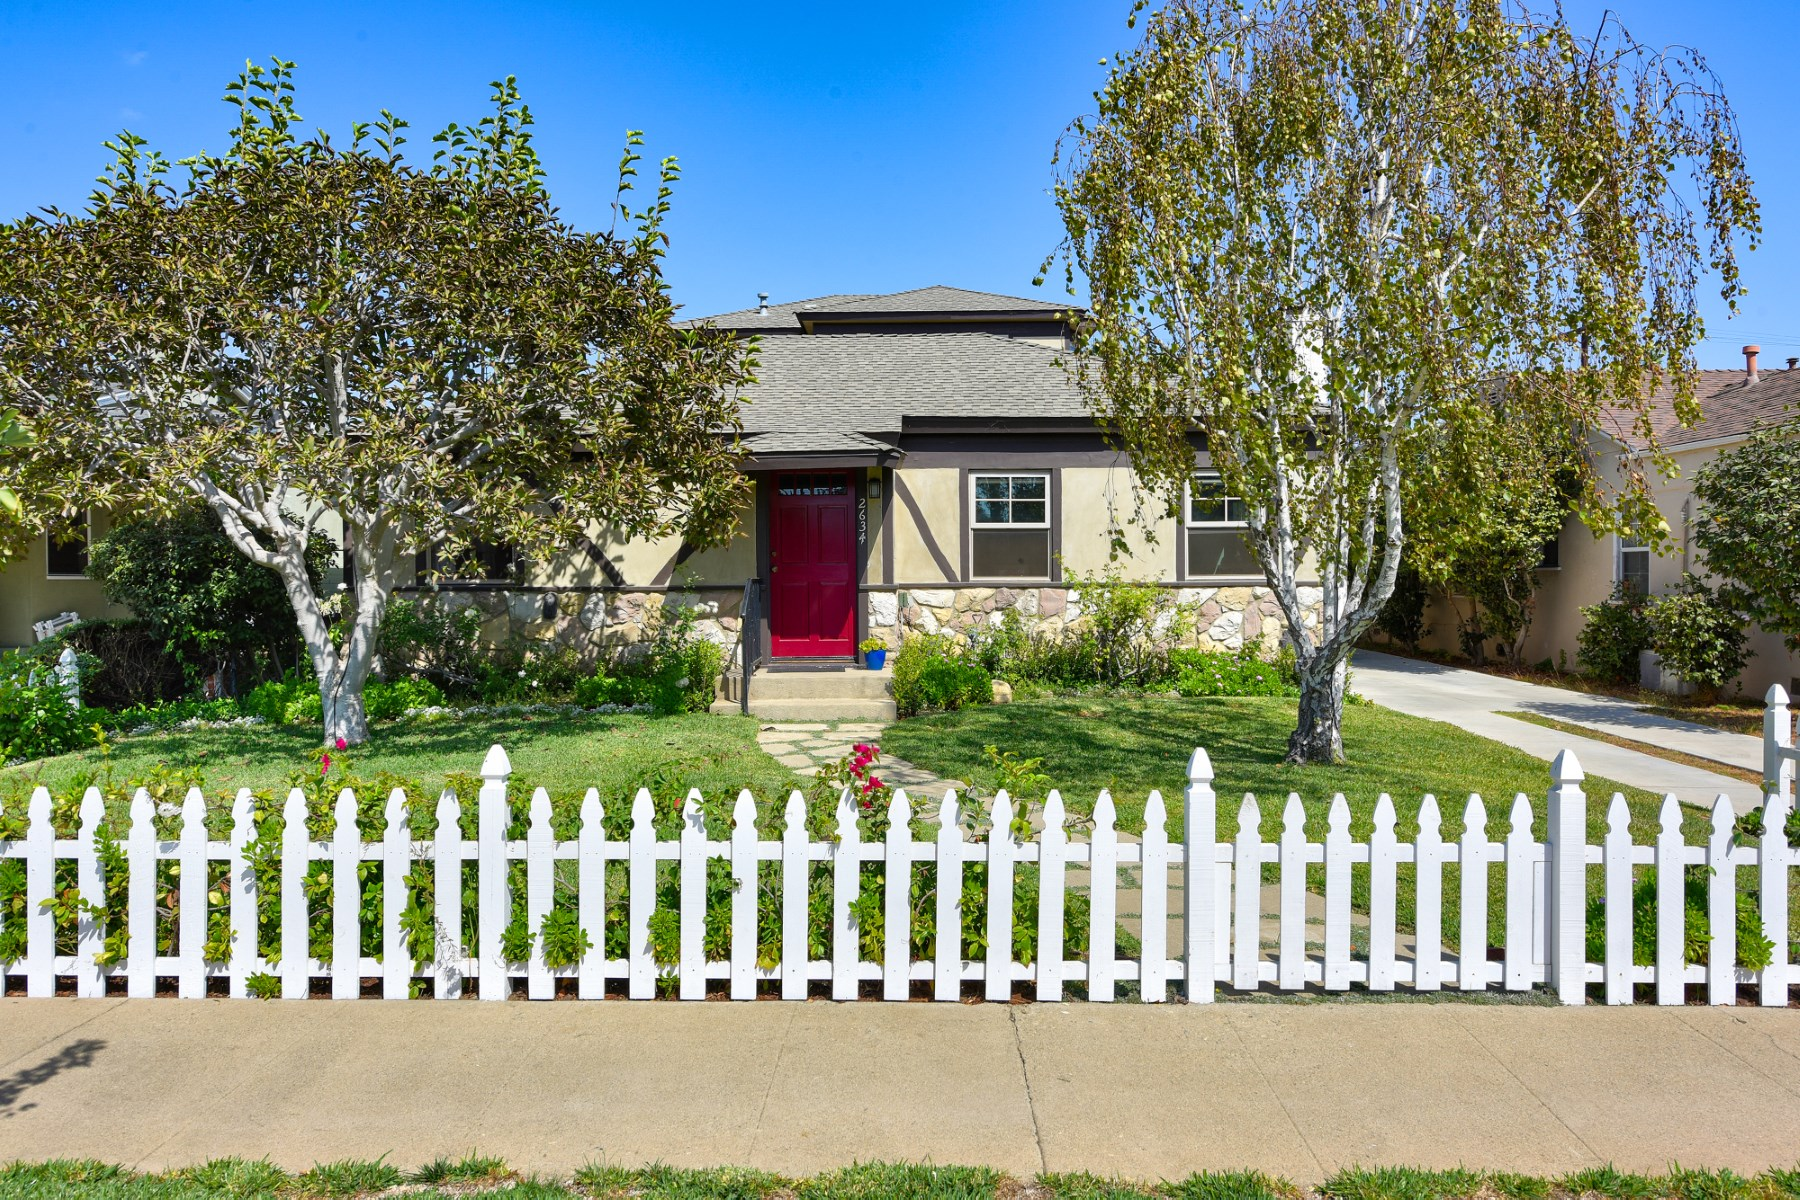 Single Family Home for Sale at Redesigned Rancho Park Home 2634 Greenfield Avenue Rancho Park, Los Angeles, California, 90064 United States